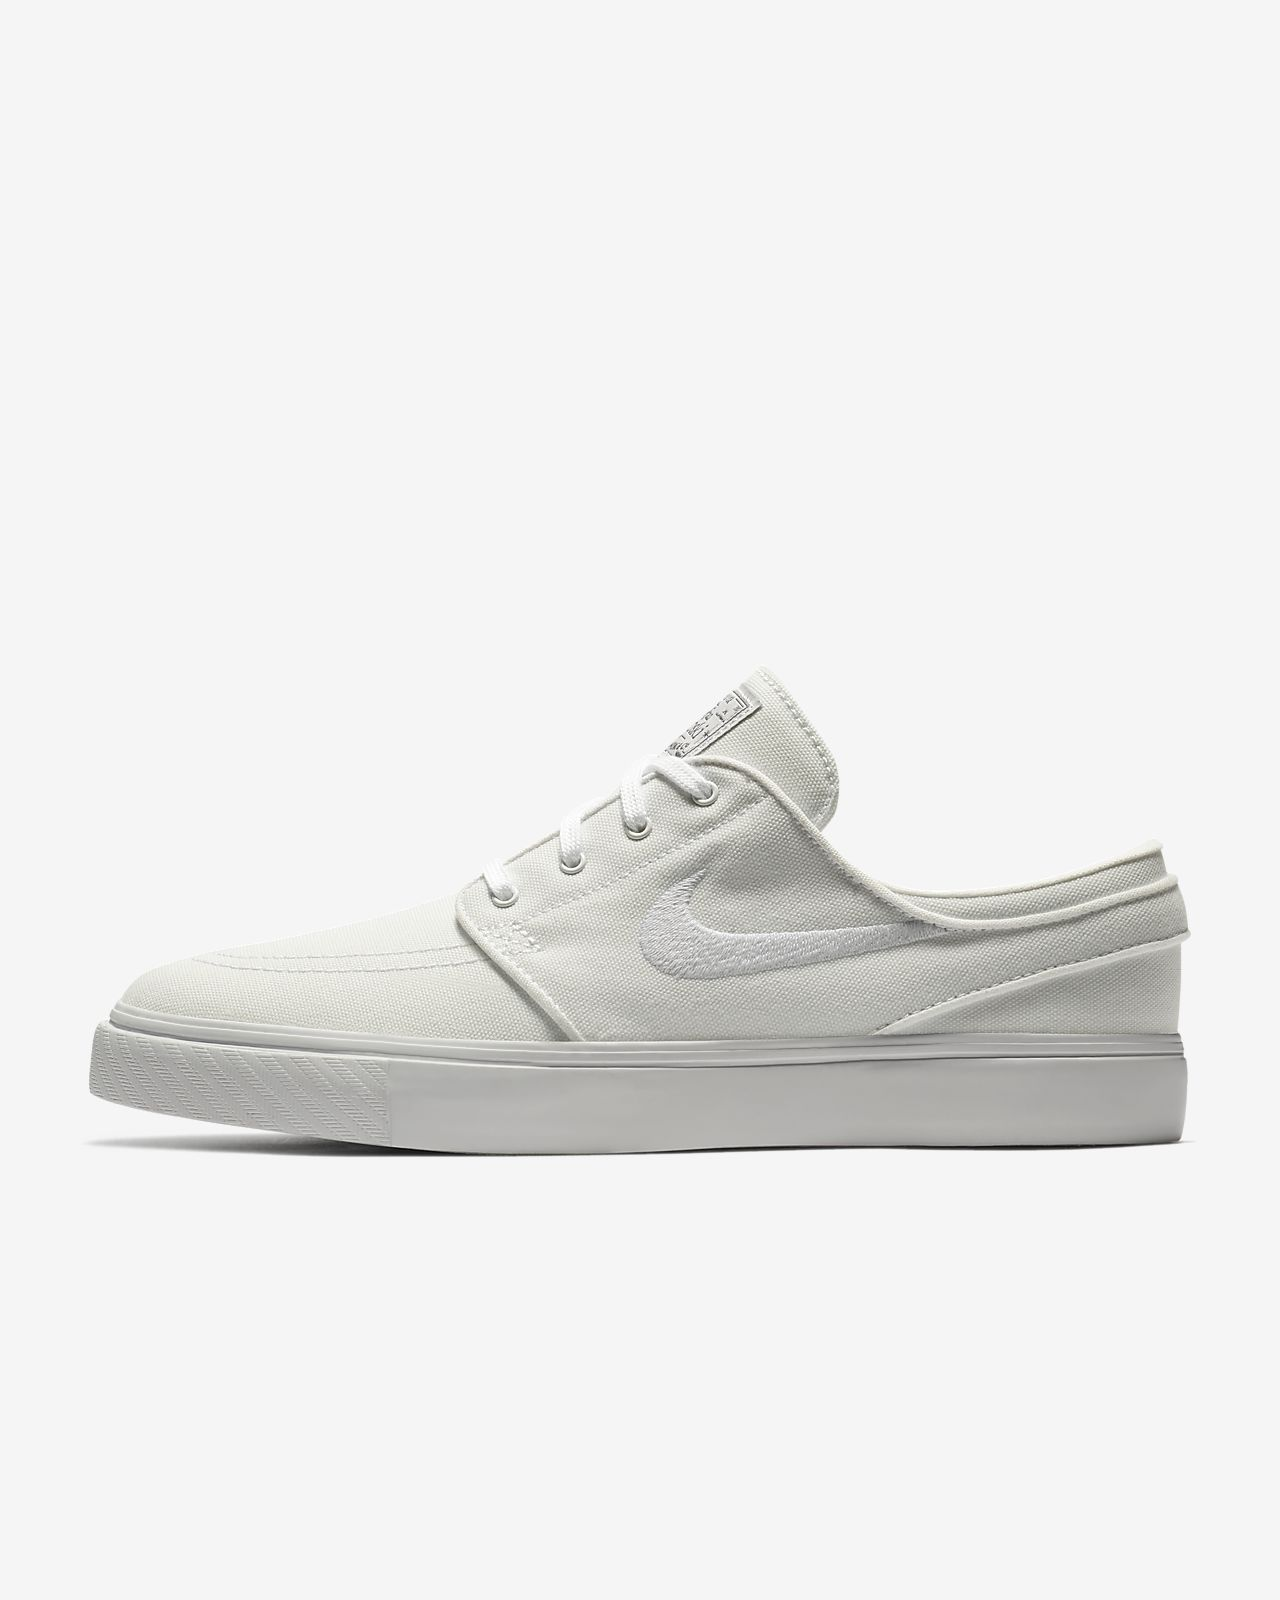 buy online 38d88 9482d ... Nike SB Zoom Stefan Janoski Canvas Men s Skate Shoe